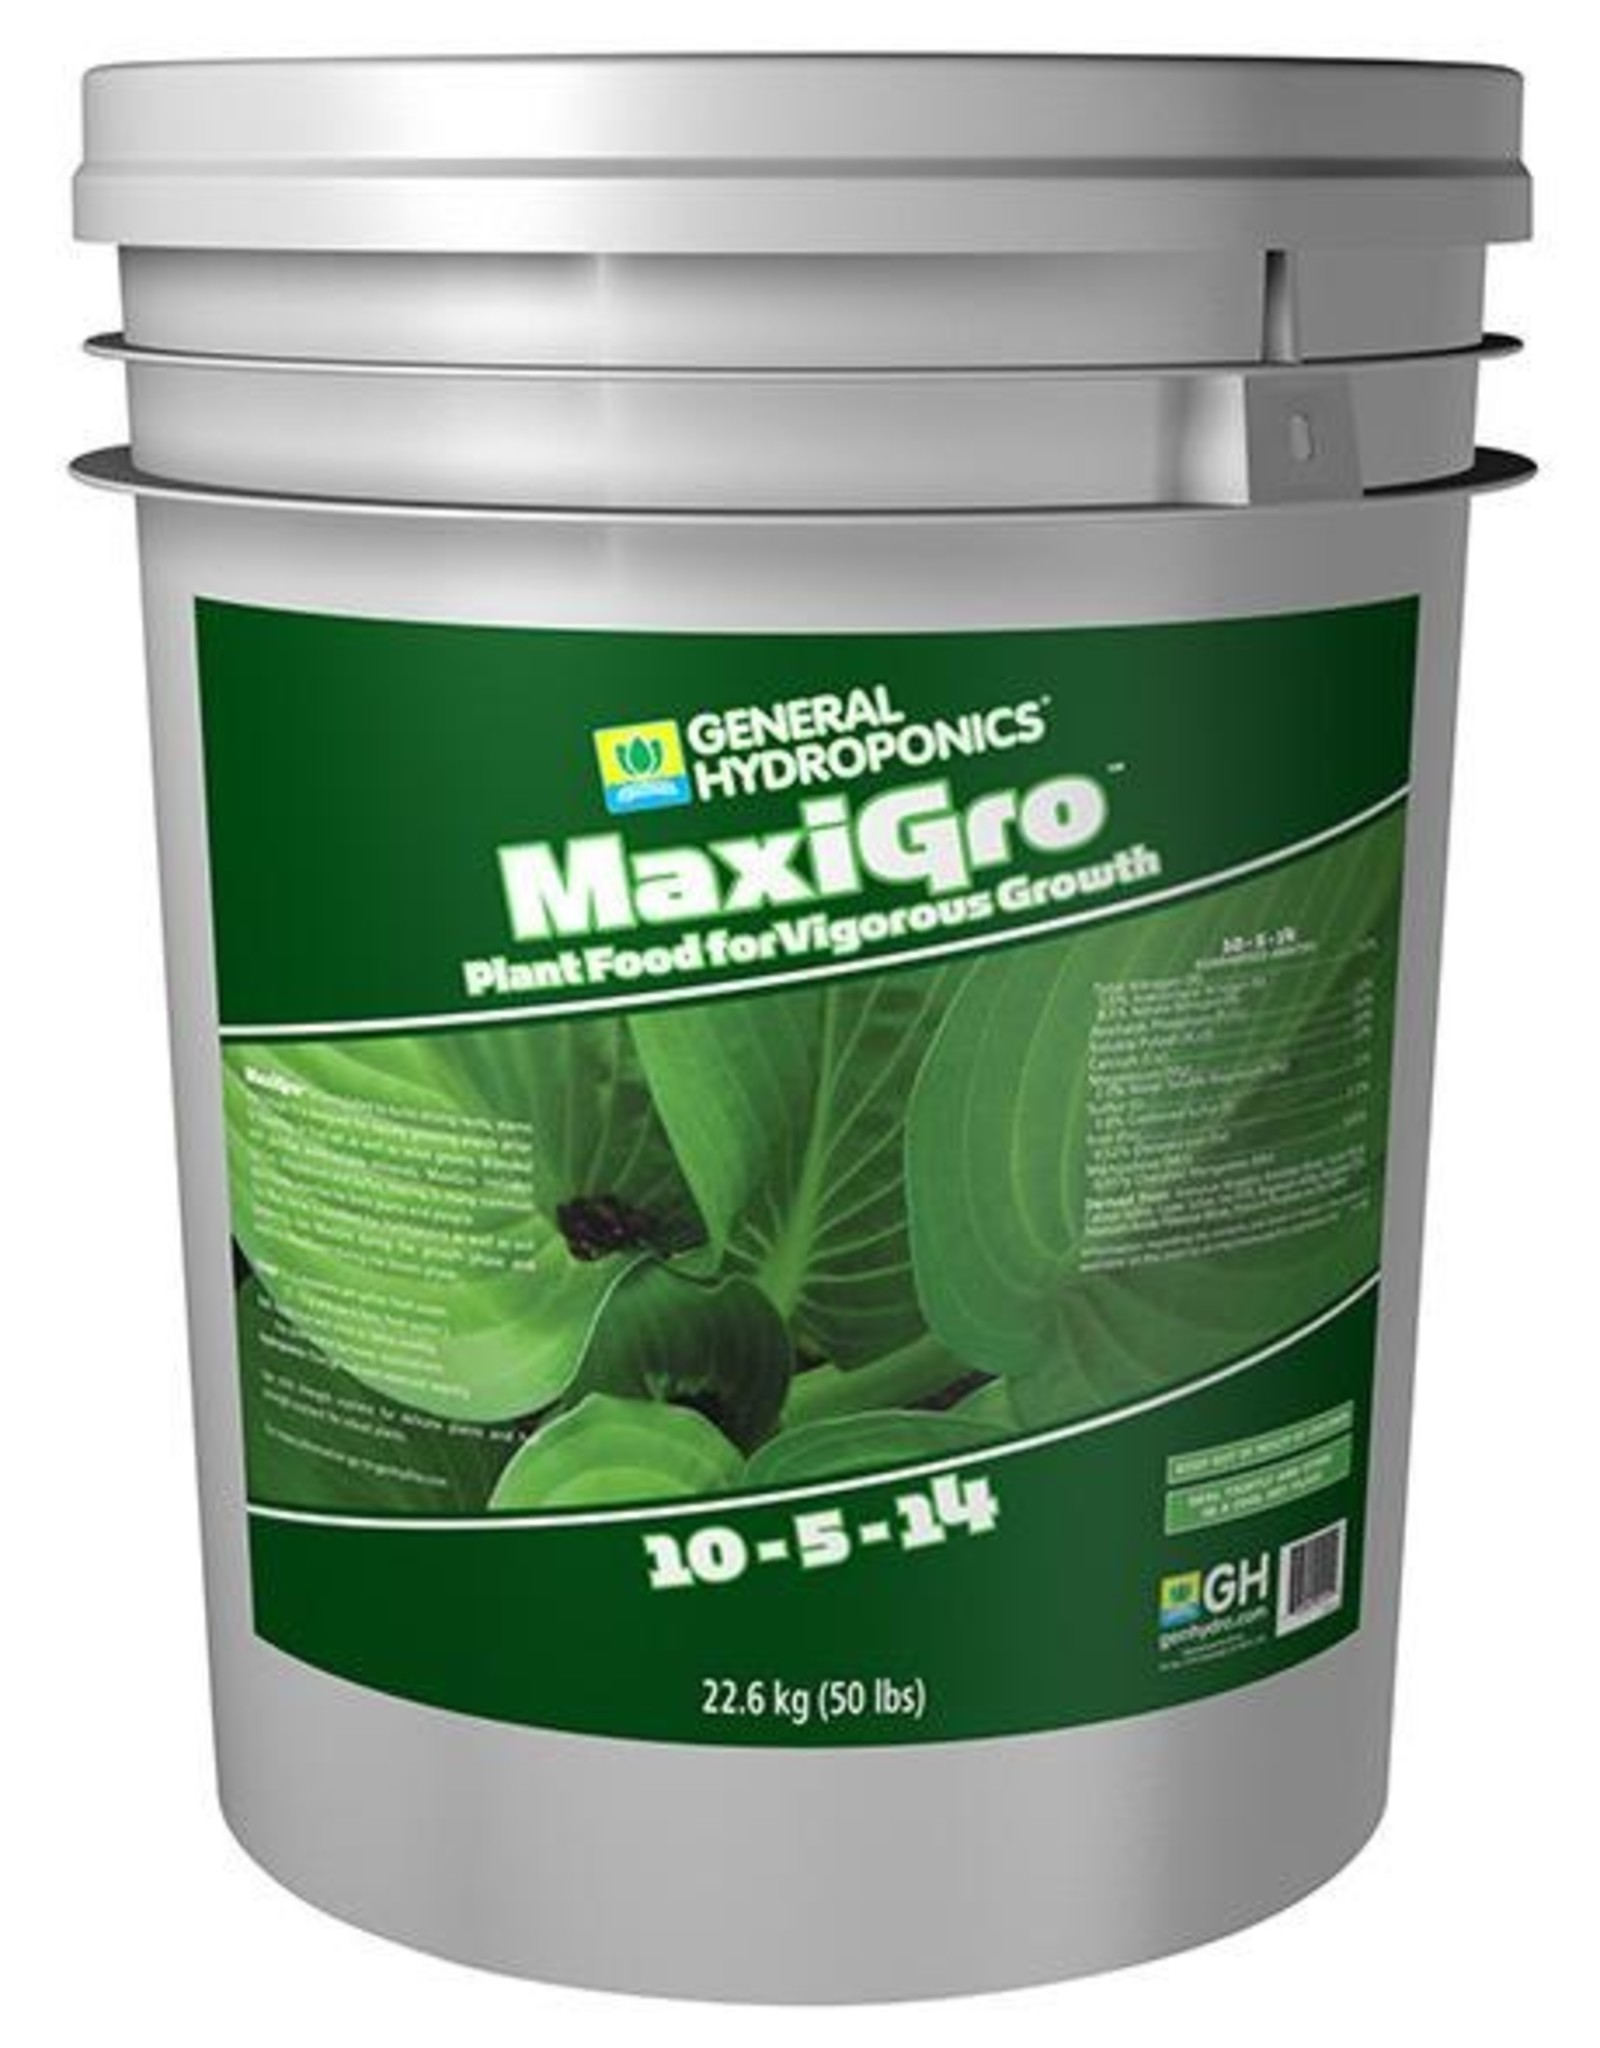 GENERAL HYDROPONICS MaxiGro™ and MaxiBloom™ are extremely potent, stand-alone, water-soluble, dry concentrate nutrients. Complete in primary, secondary and micronutrients, pH buffered MaxiGro™ and MaxiBloom™ will provide superior results when used with a wide variety of crop